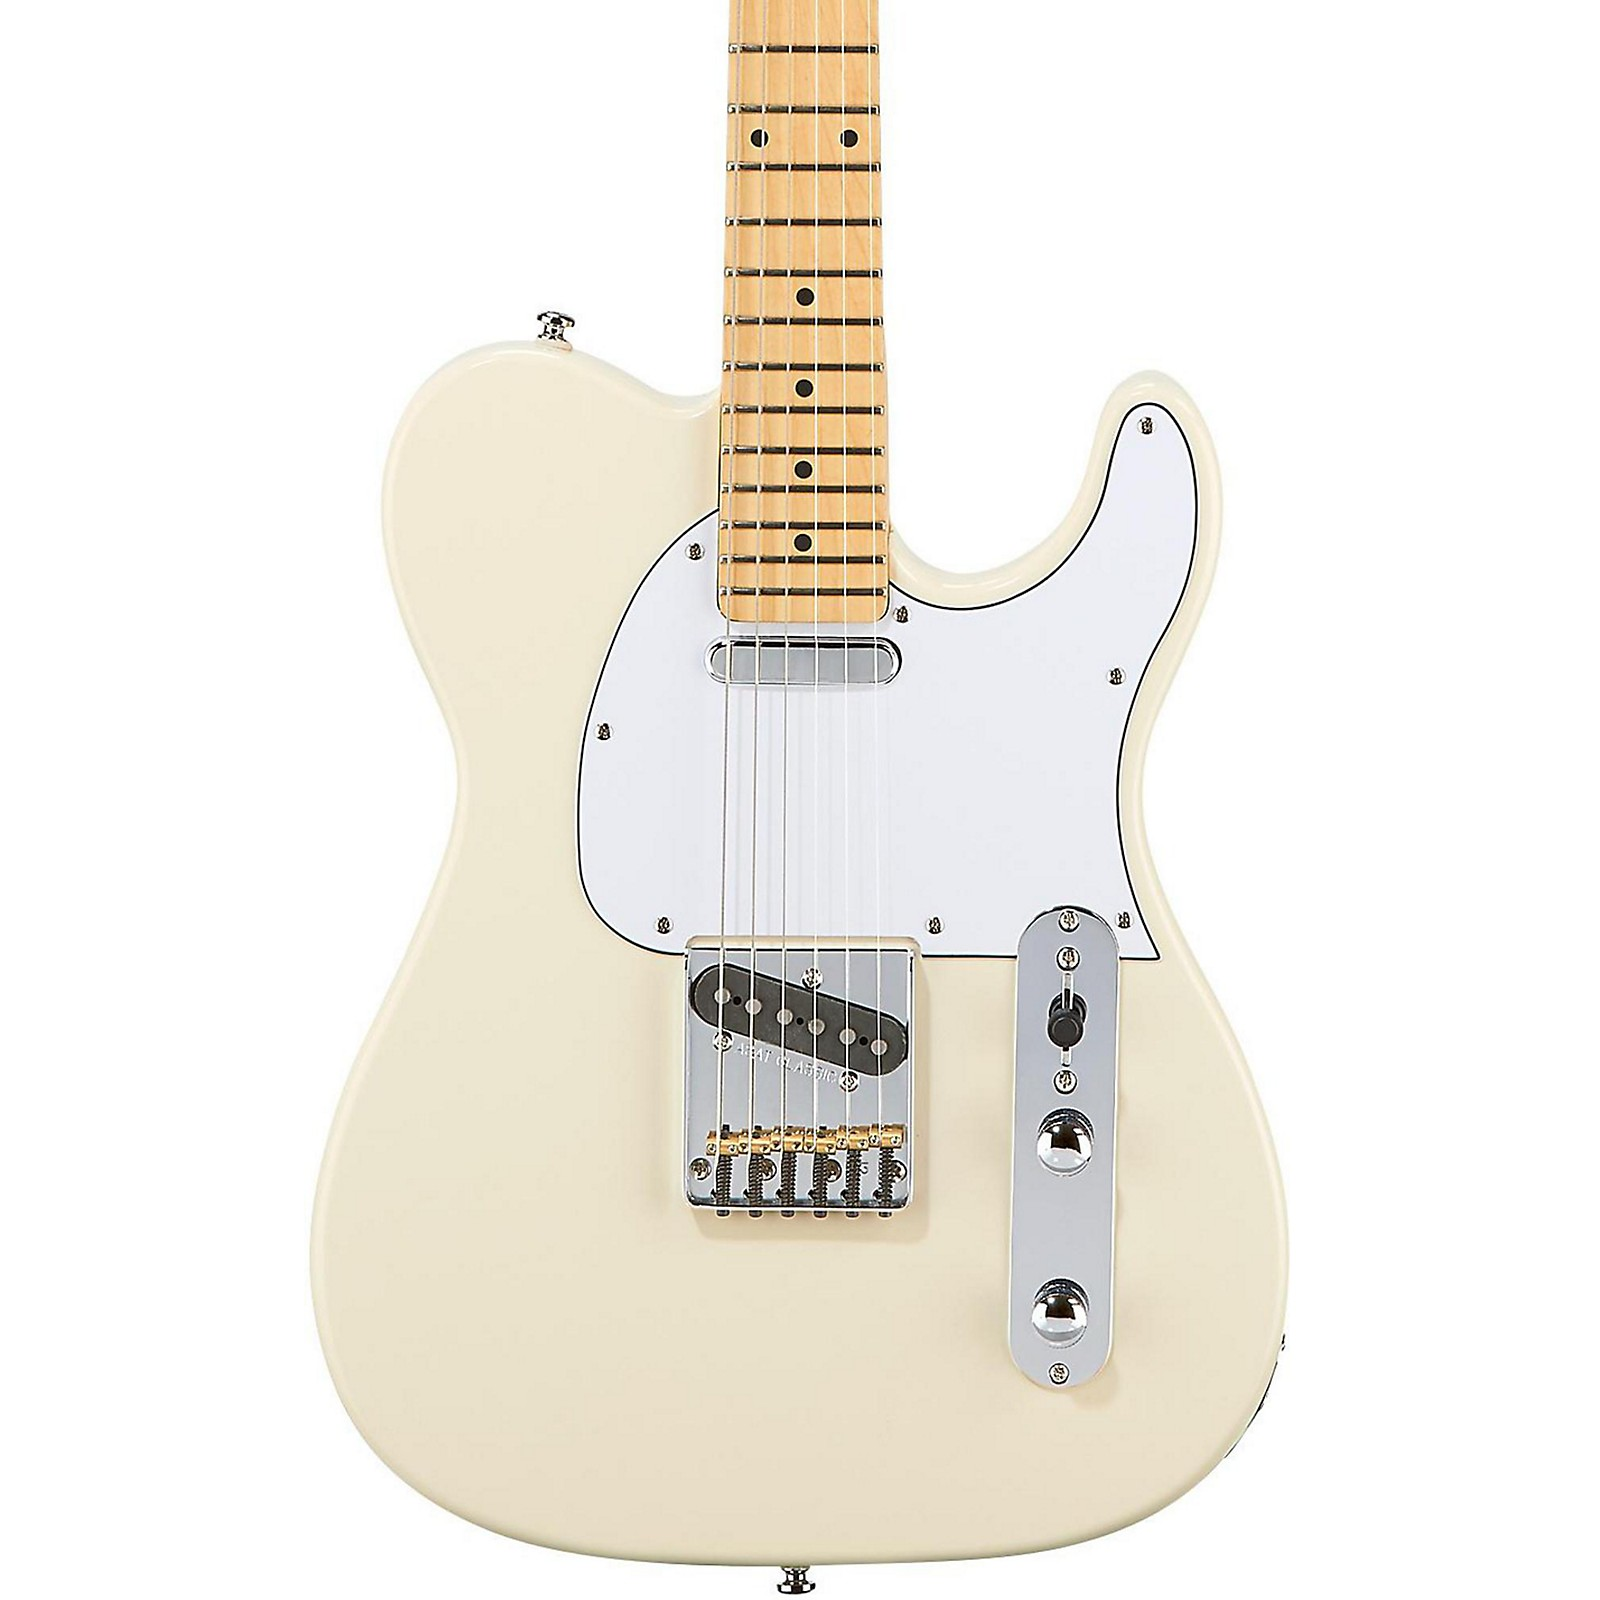 holiday electric guitar wiring diagram g l limited edition tribute asat classic electric guitar olympic  tribute asat classic electric guitar